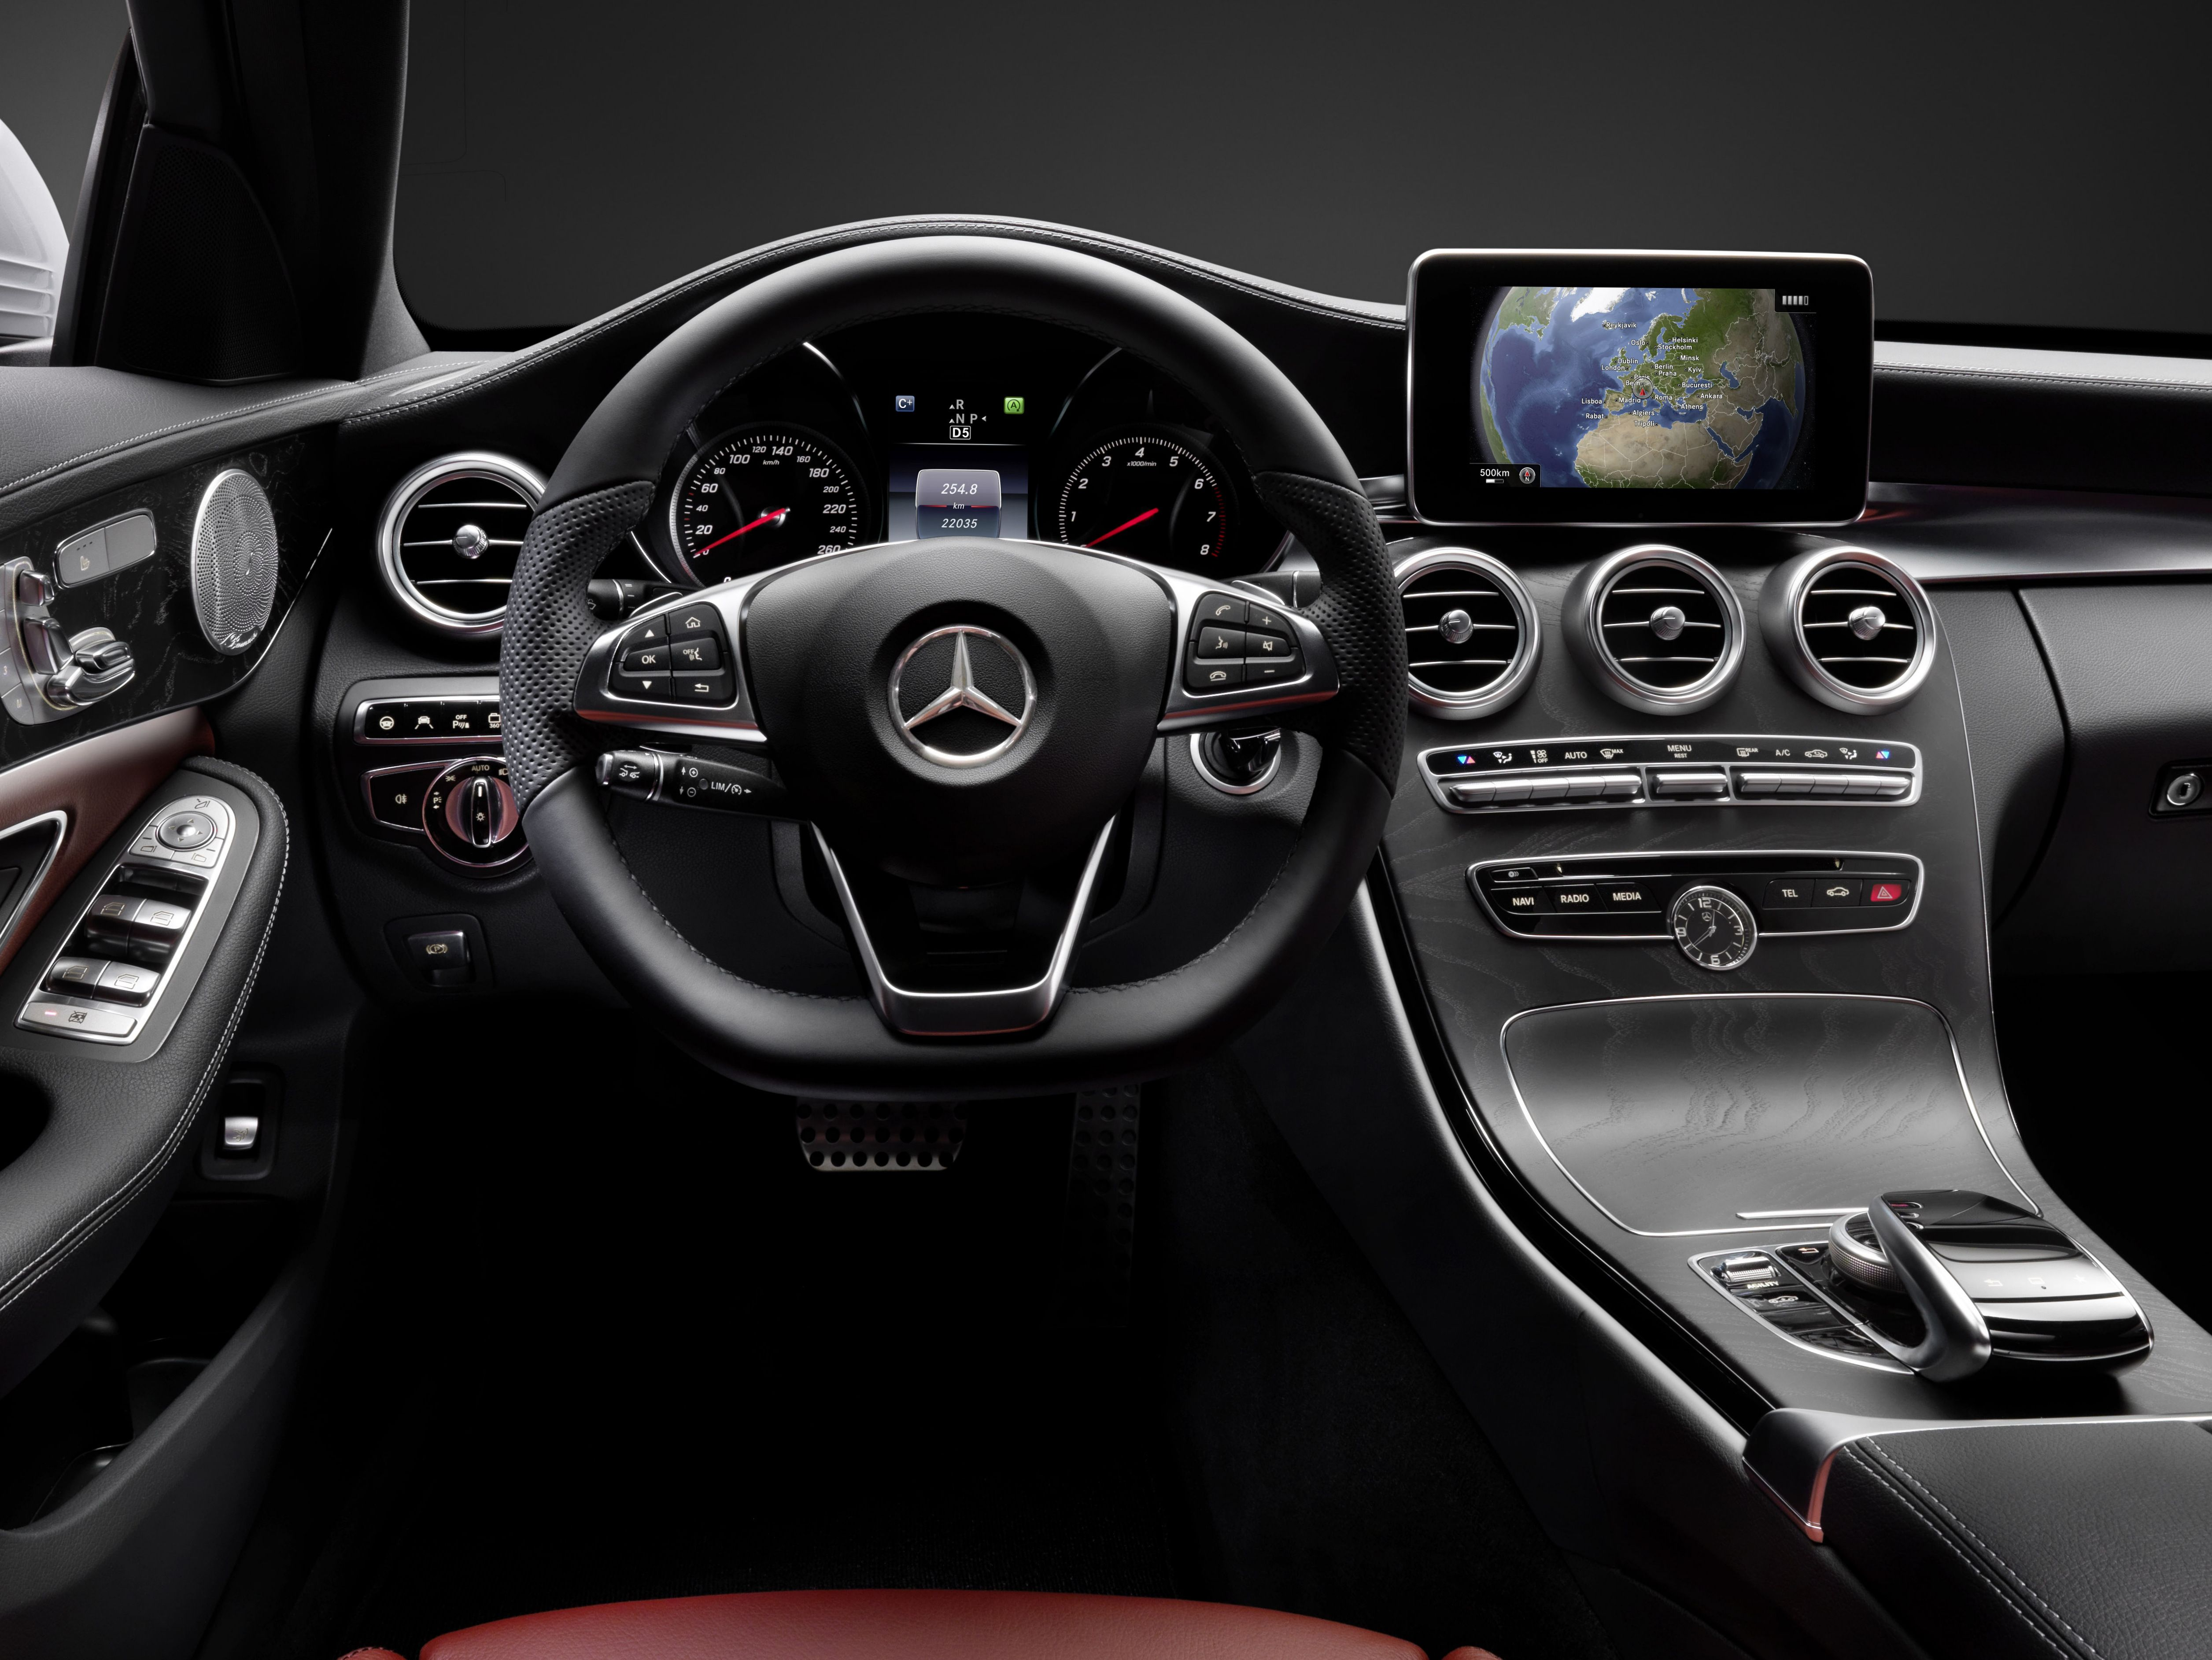 New Mercedes Benz C Class Shots Show Google Maps With Images C